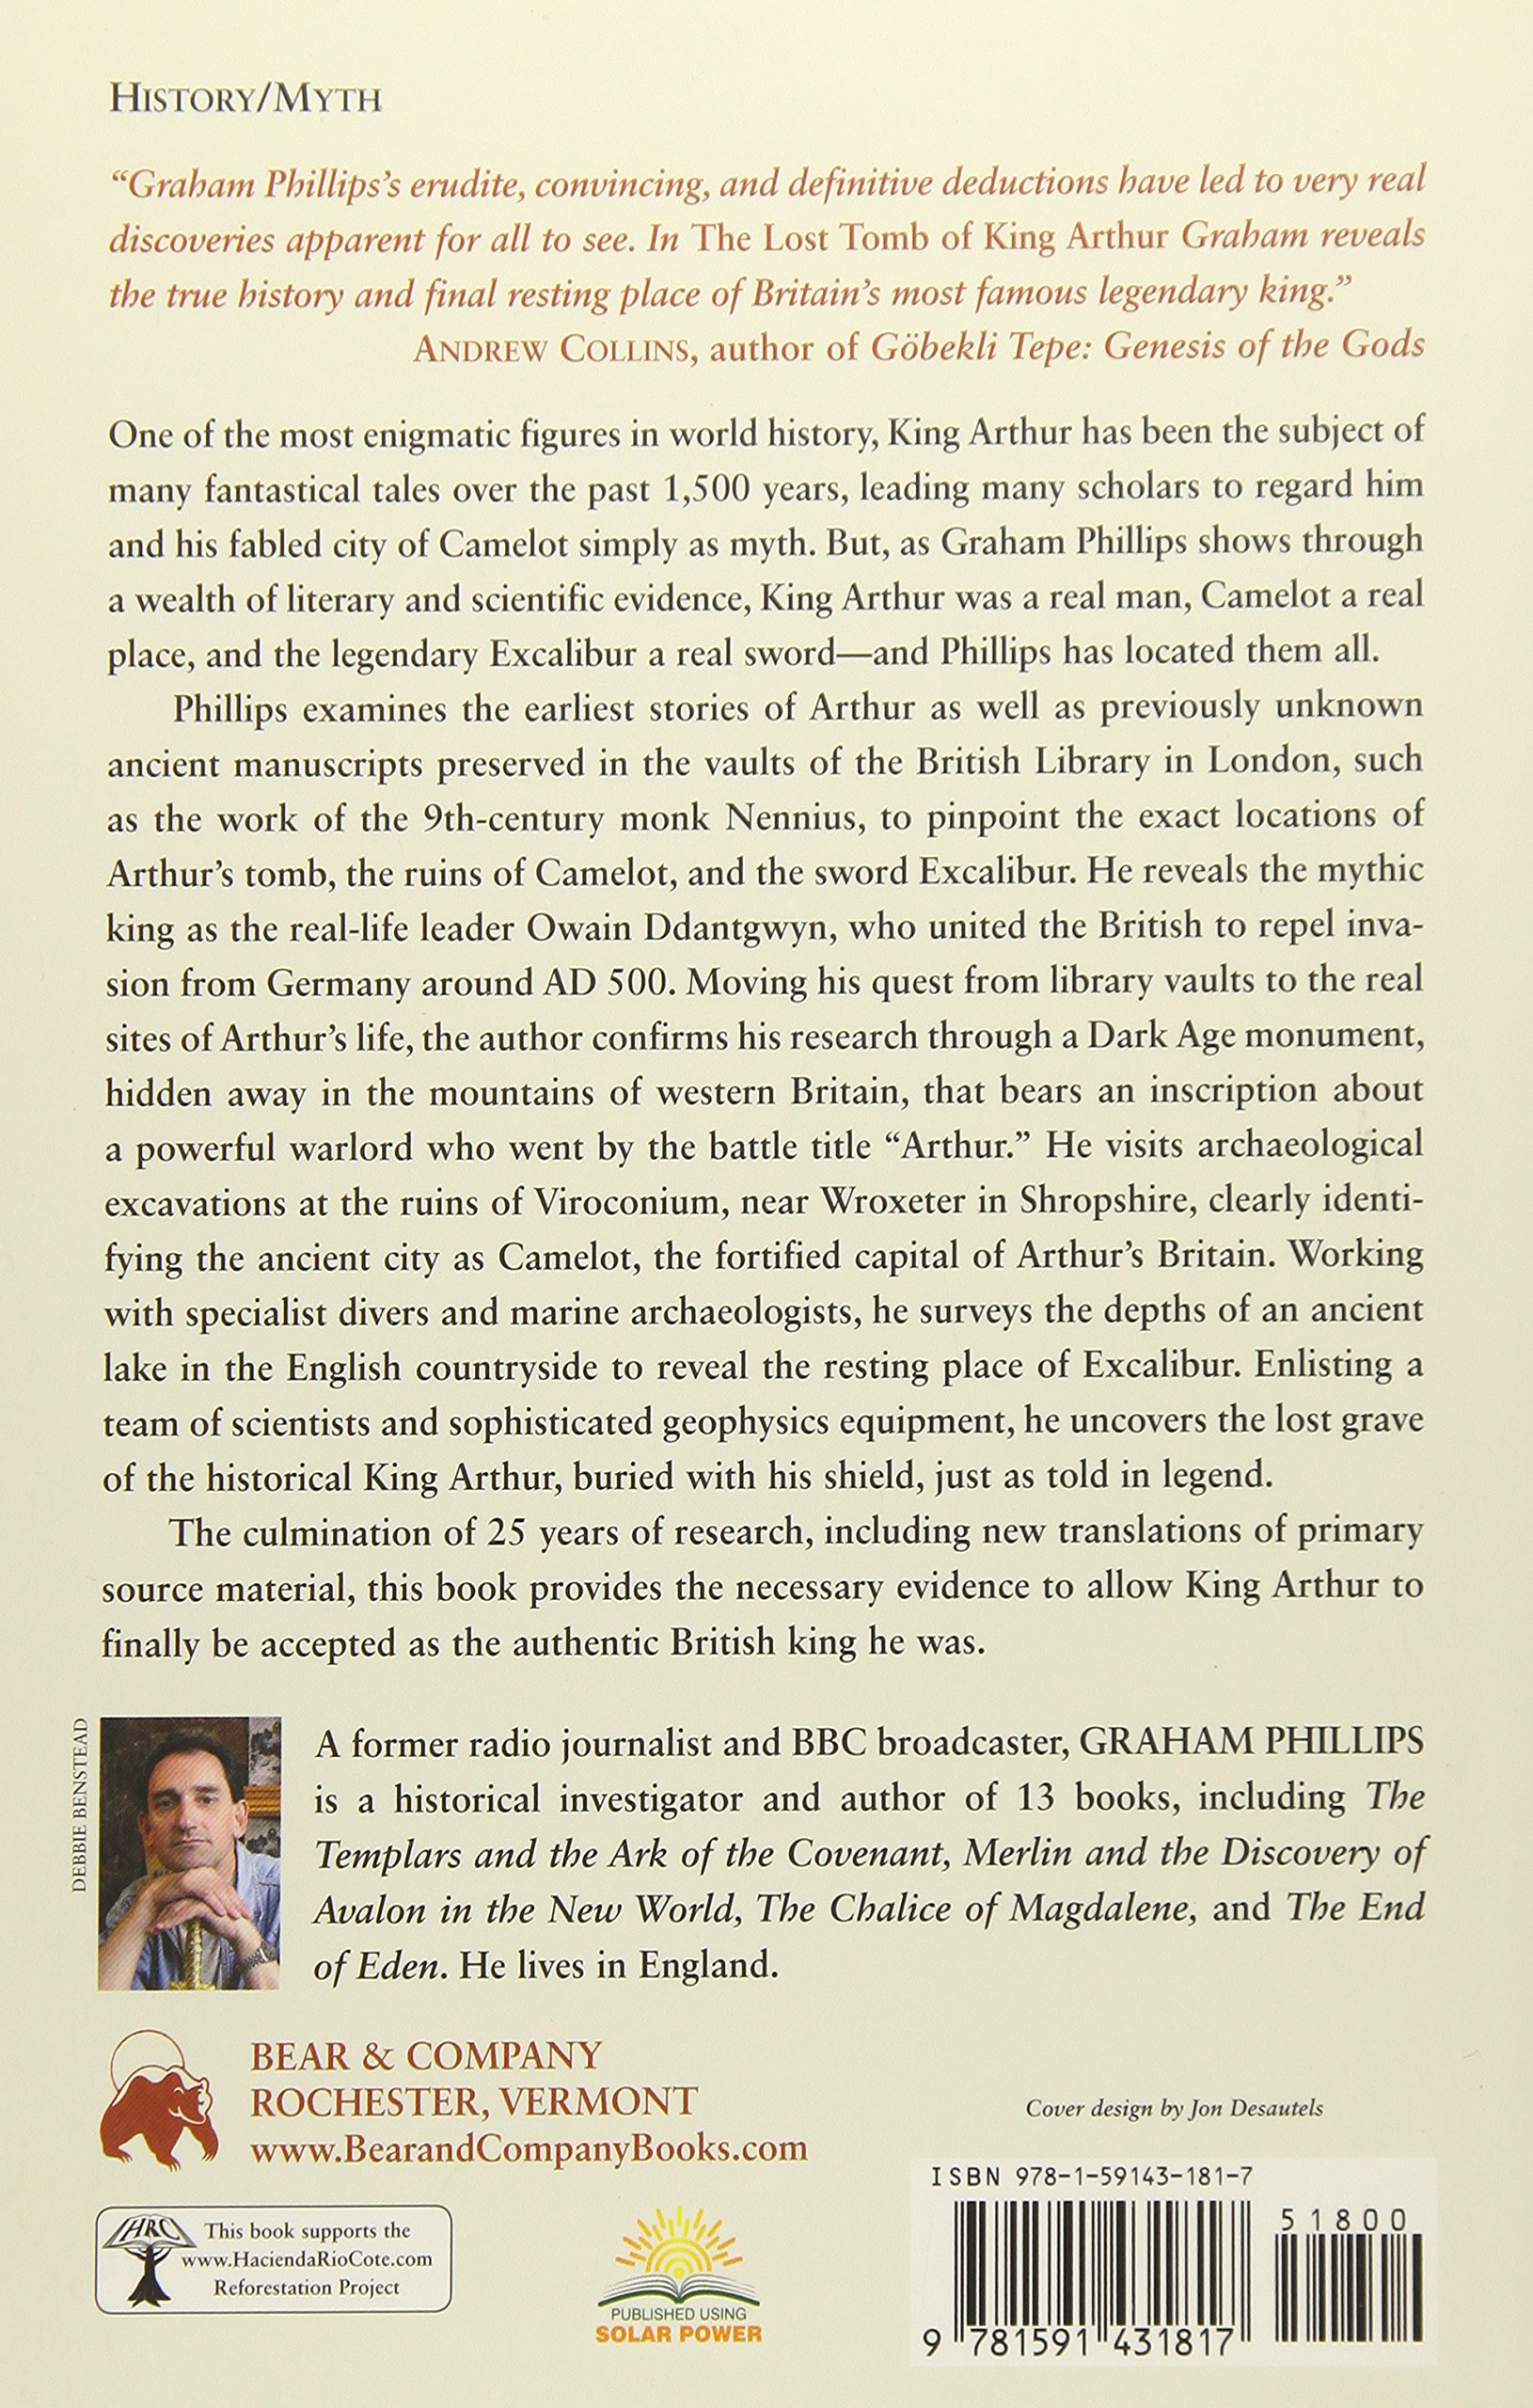 The Lost Tomb of King Arthur: The Search for Camelot and the Isle of  Avalon: Graham Phillips: 9781591431817: Amazon.com: Books